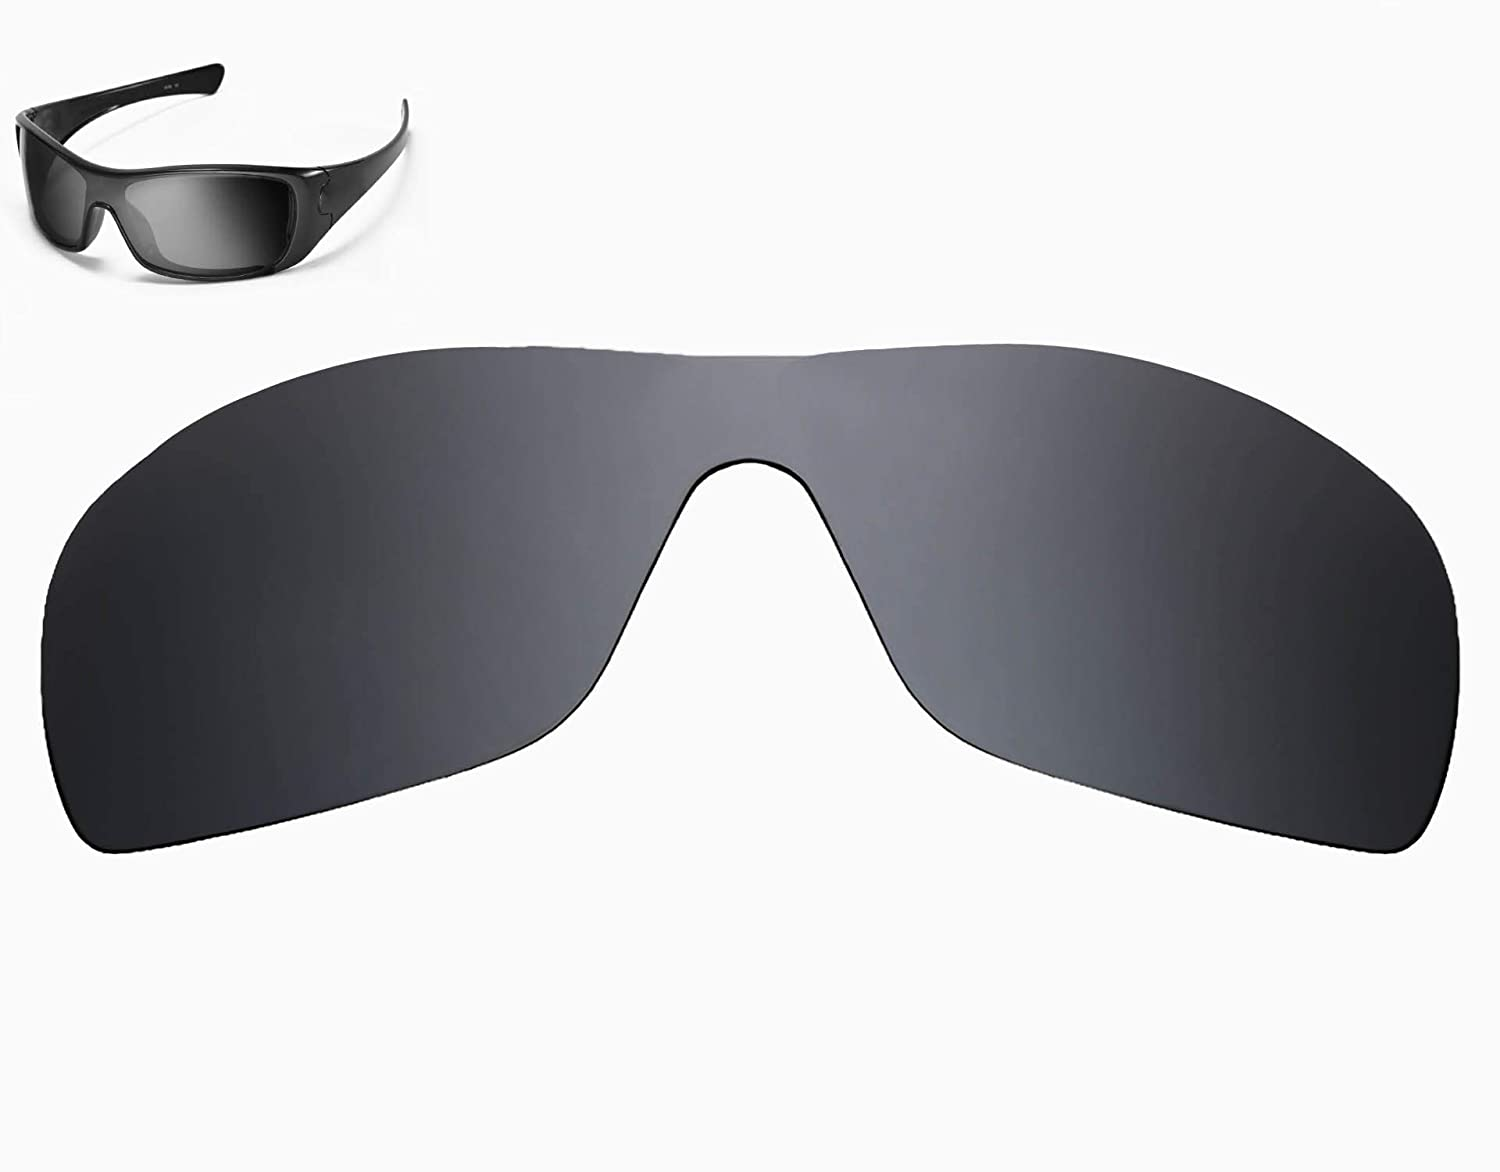 Amazon.com: Lentes de repuesto compatibles con OAKLEY Antix ...